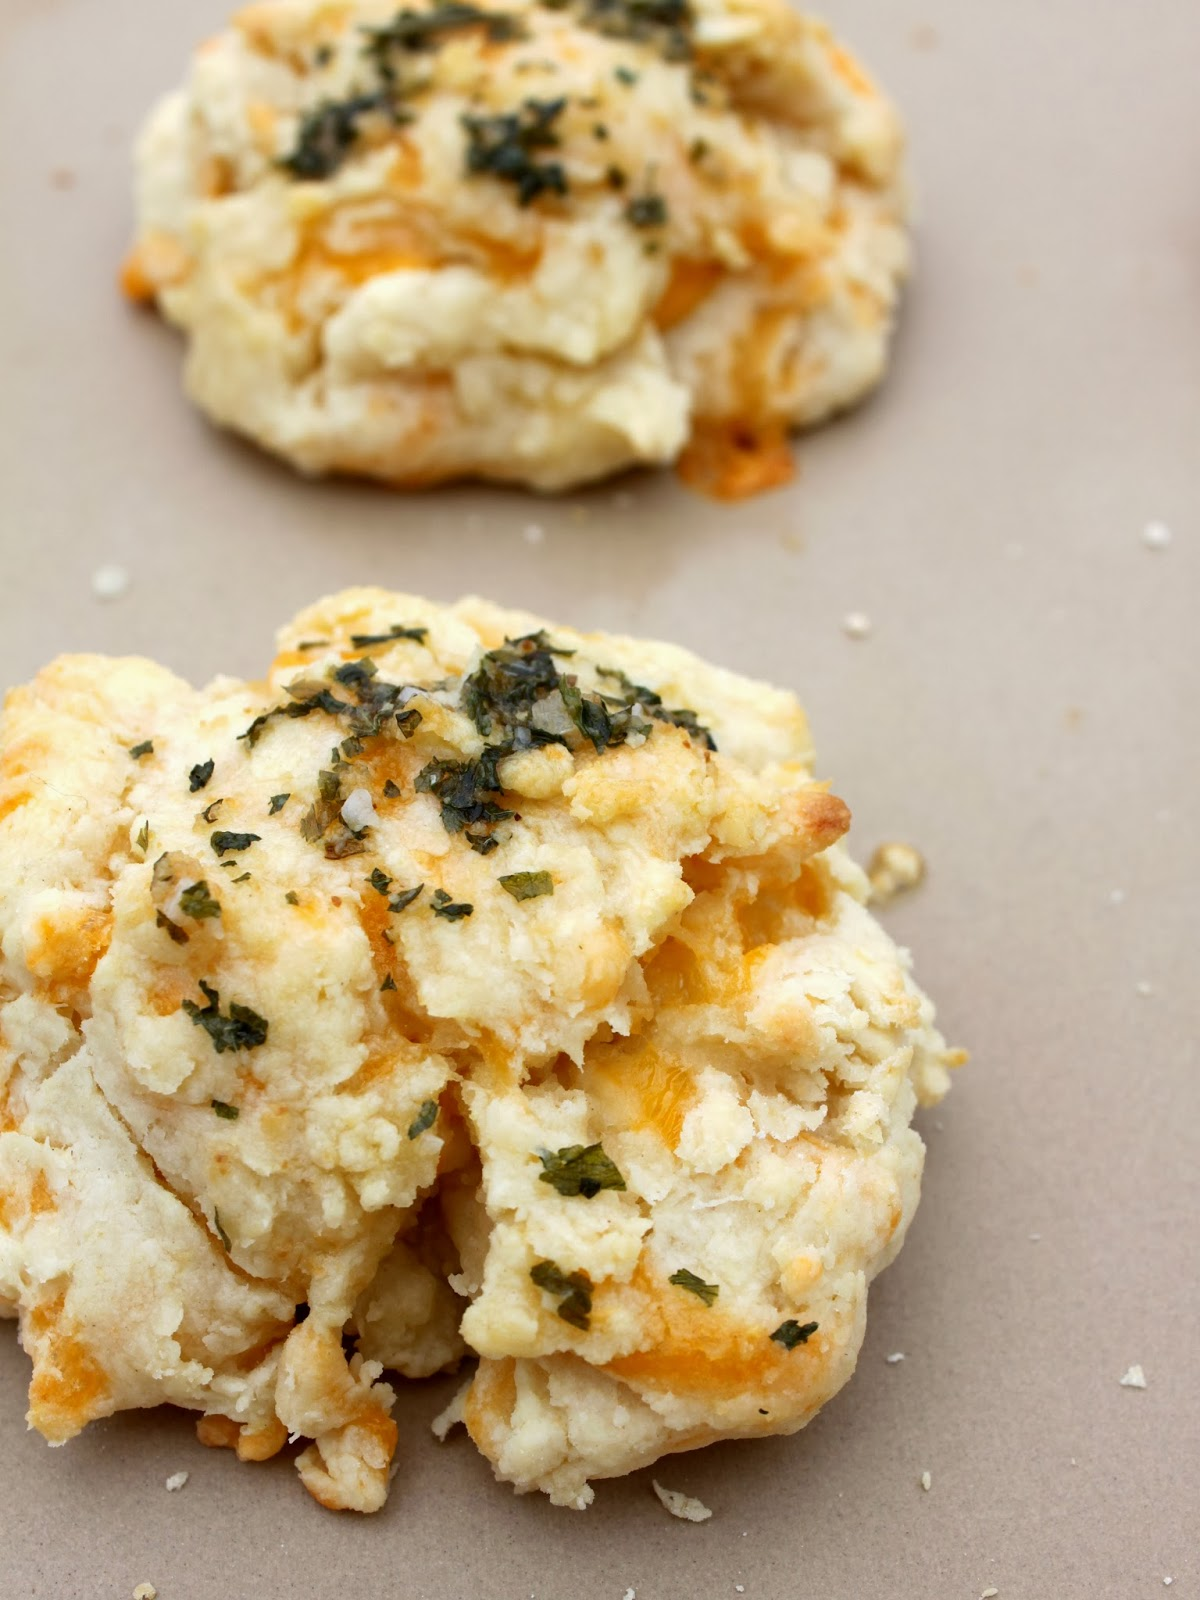 ... & Sycamore Trees: Bangin' Garlic Cheddar Biscuits (From Scratch